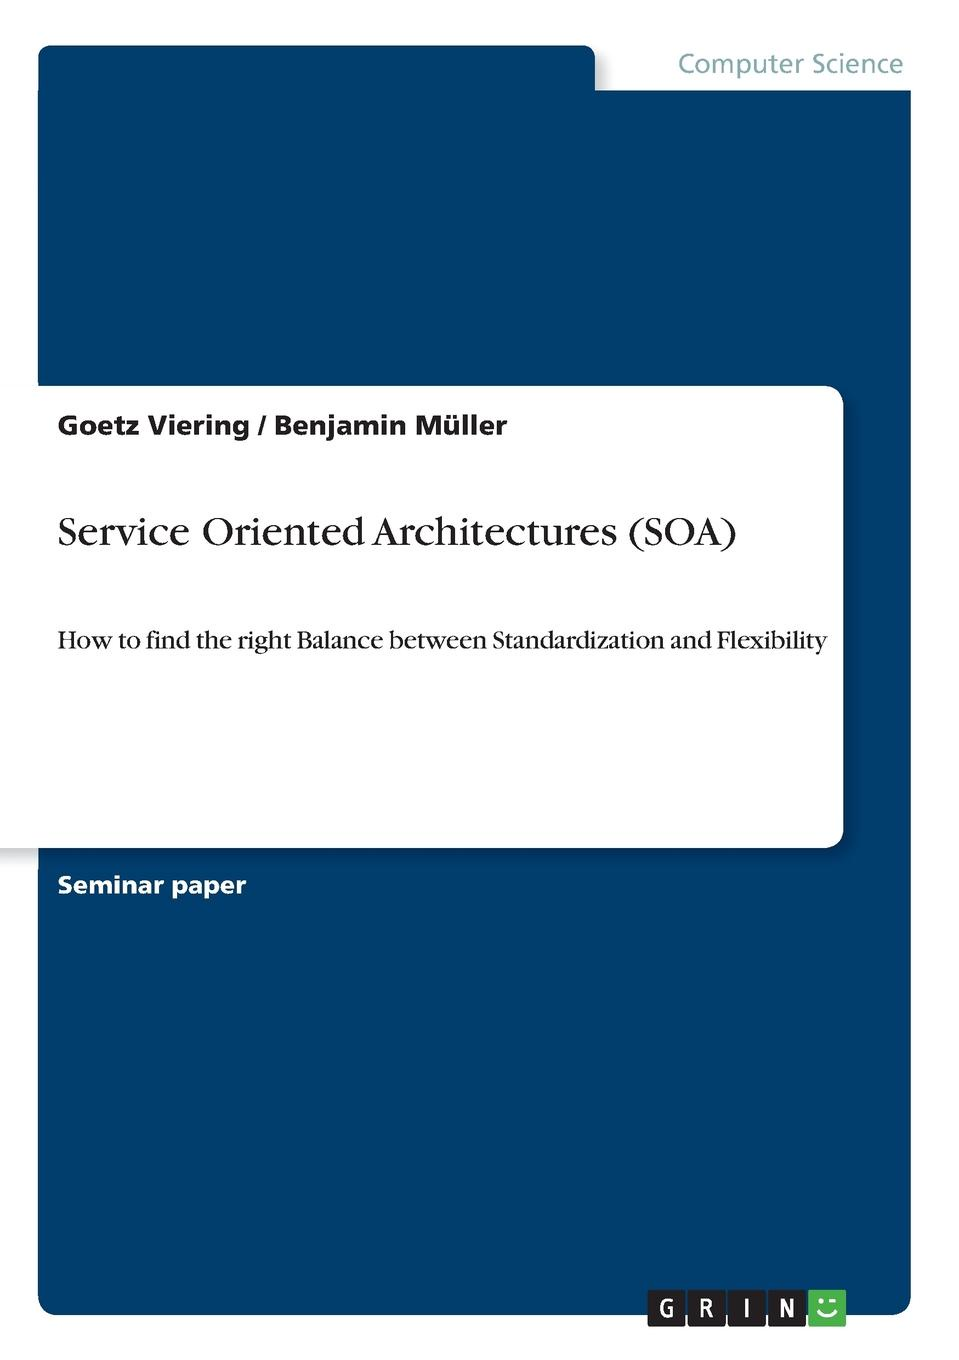 Goetz Viering, Benjamin Müller Service Oriented Architectures (SOA) kyle gabhart service oriented architecture field guide for executives